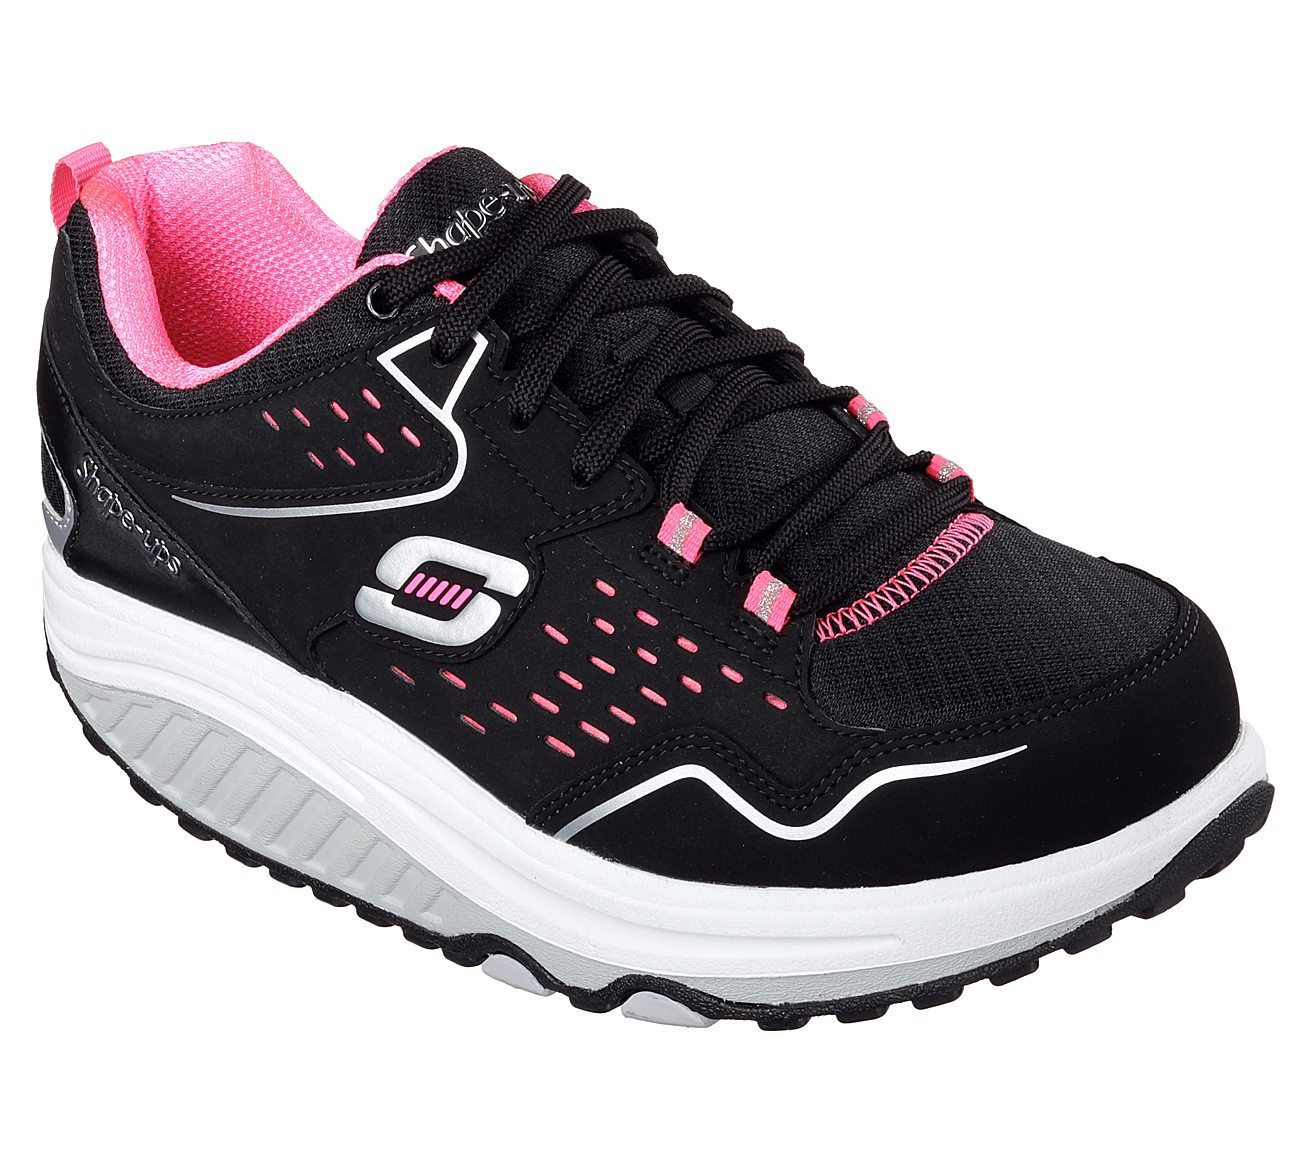 Buy SKECHERS Shape Shape SKECHERS ups 2.0 Everyday Comfort Shape ups Schuhes only b27ee9